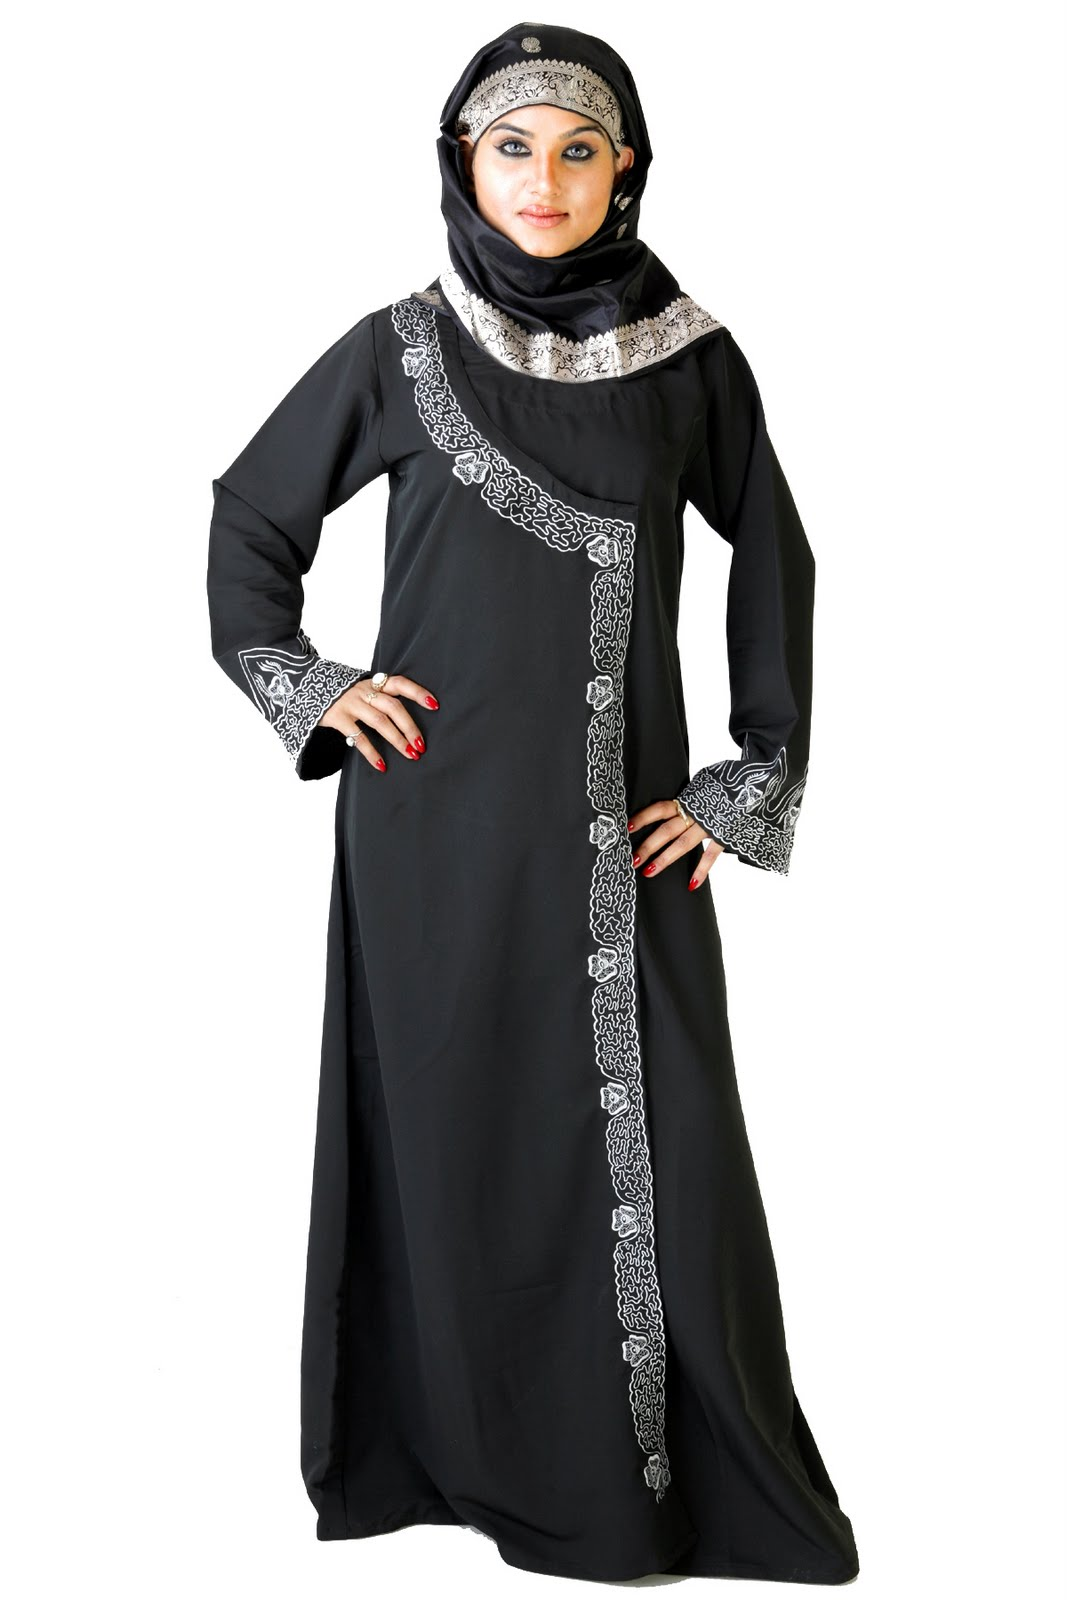 Arabian Women Clothing | www.imgkid.com - The Image Kid ...